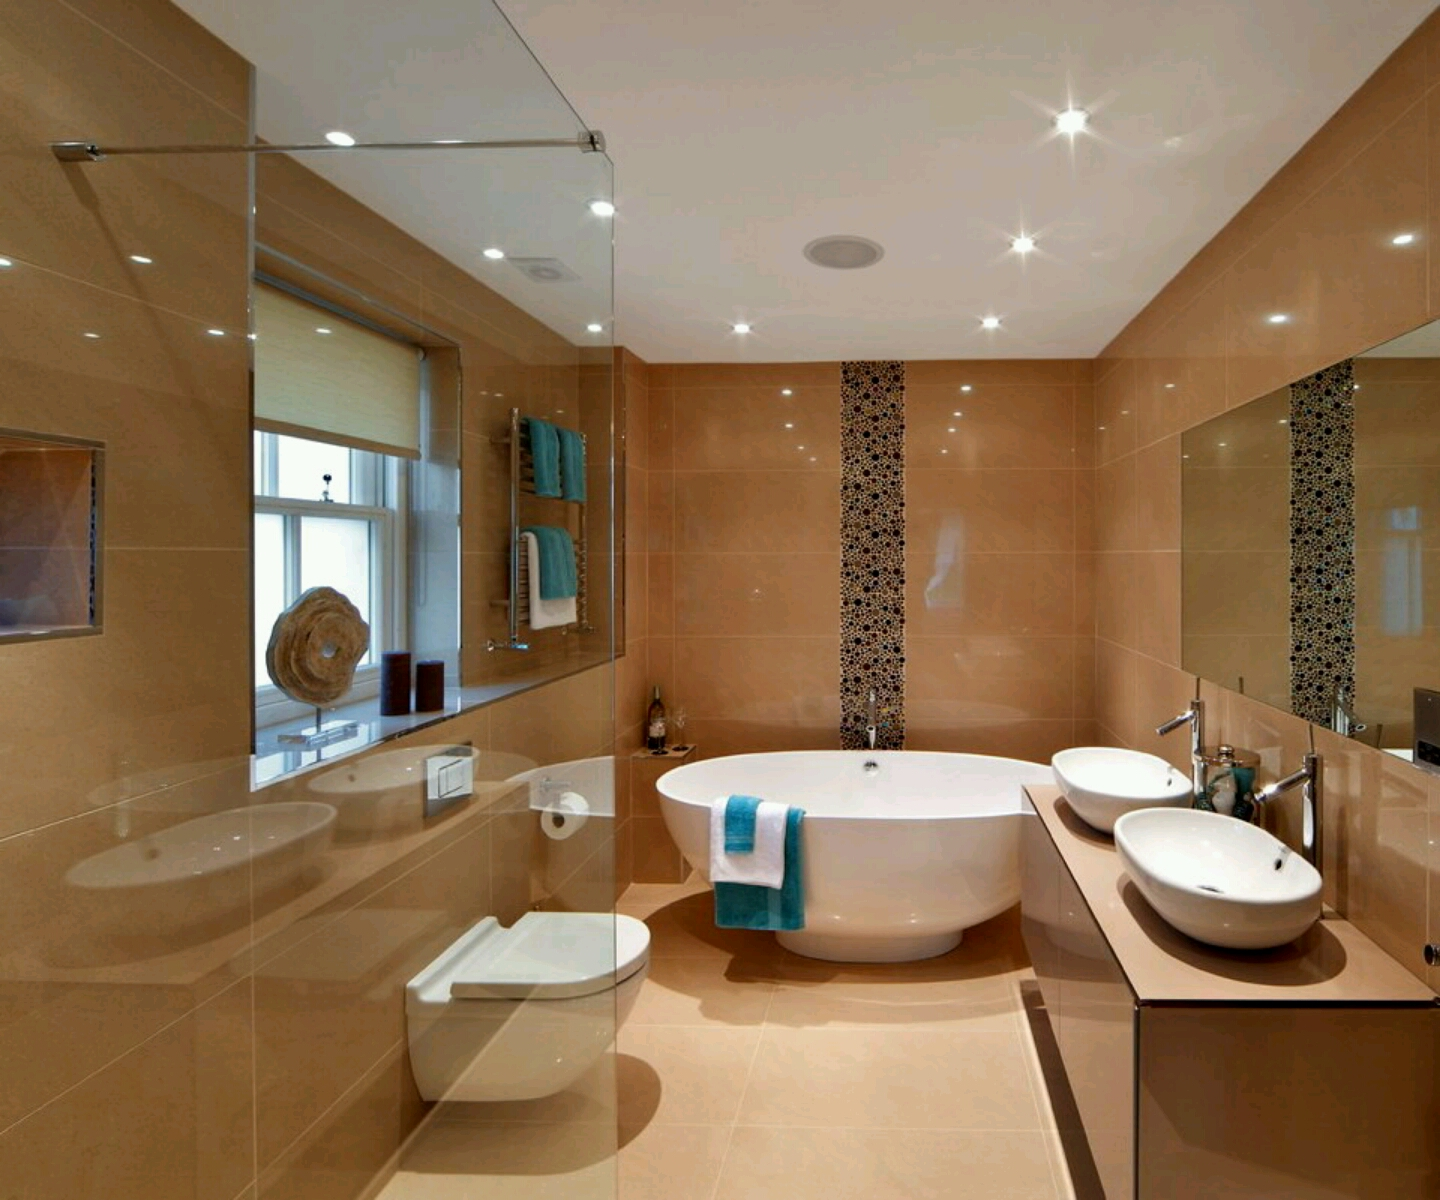 New home designs latest luxury modern bathrooms designs for Bathroom home ideas